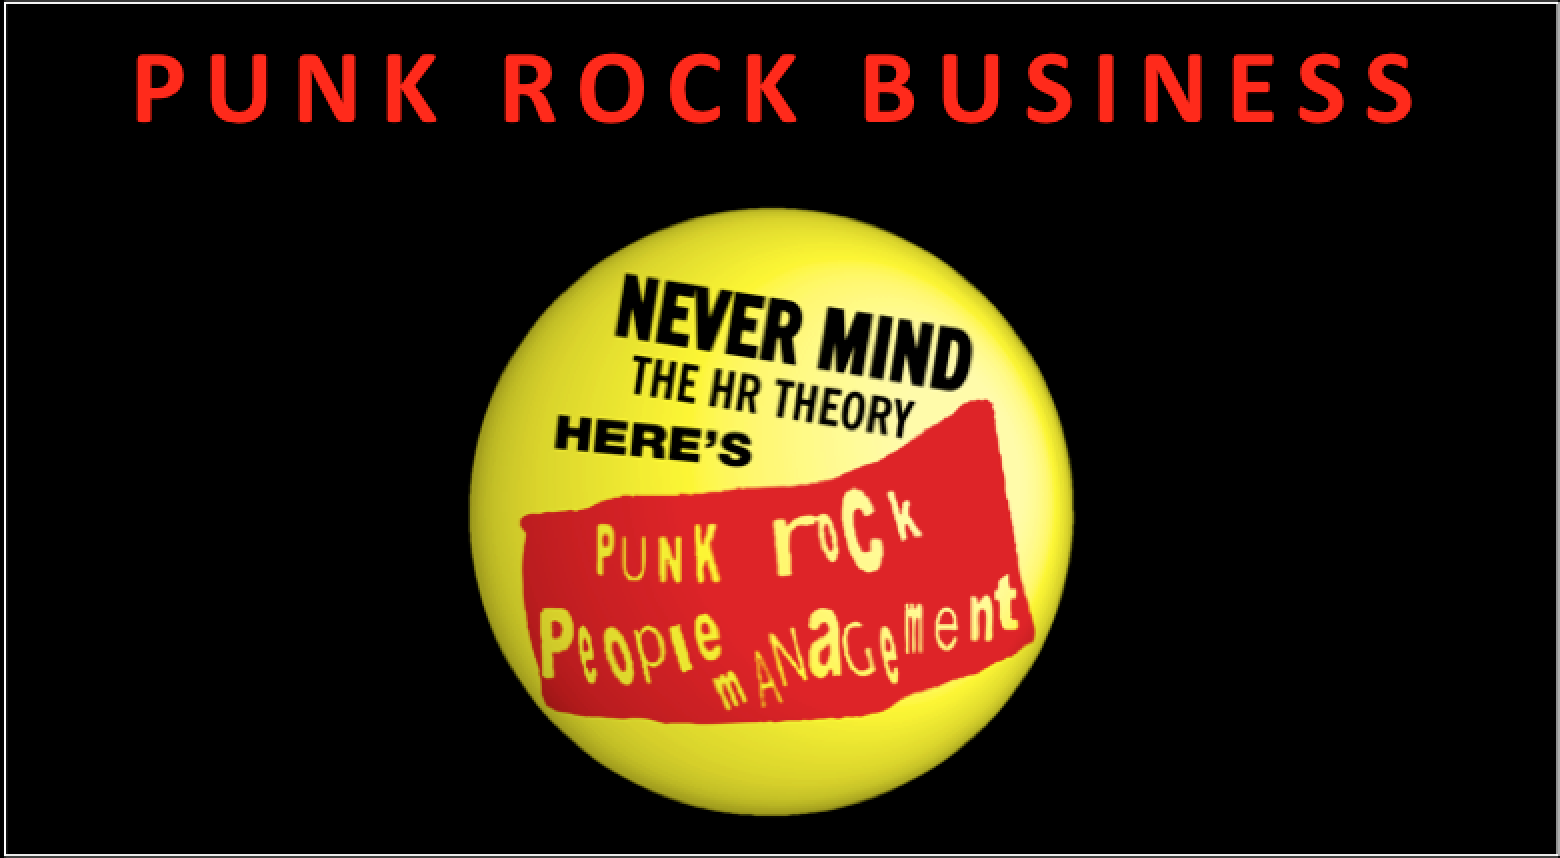 Punk Rock Business